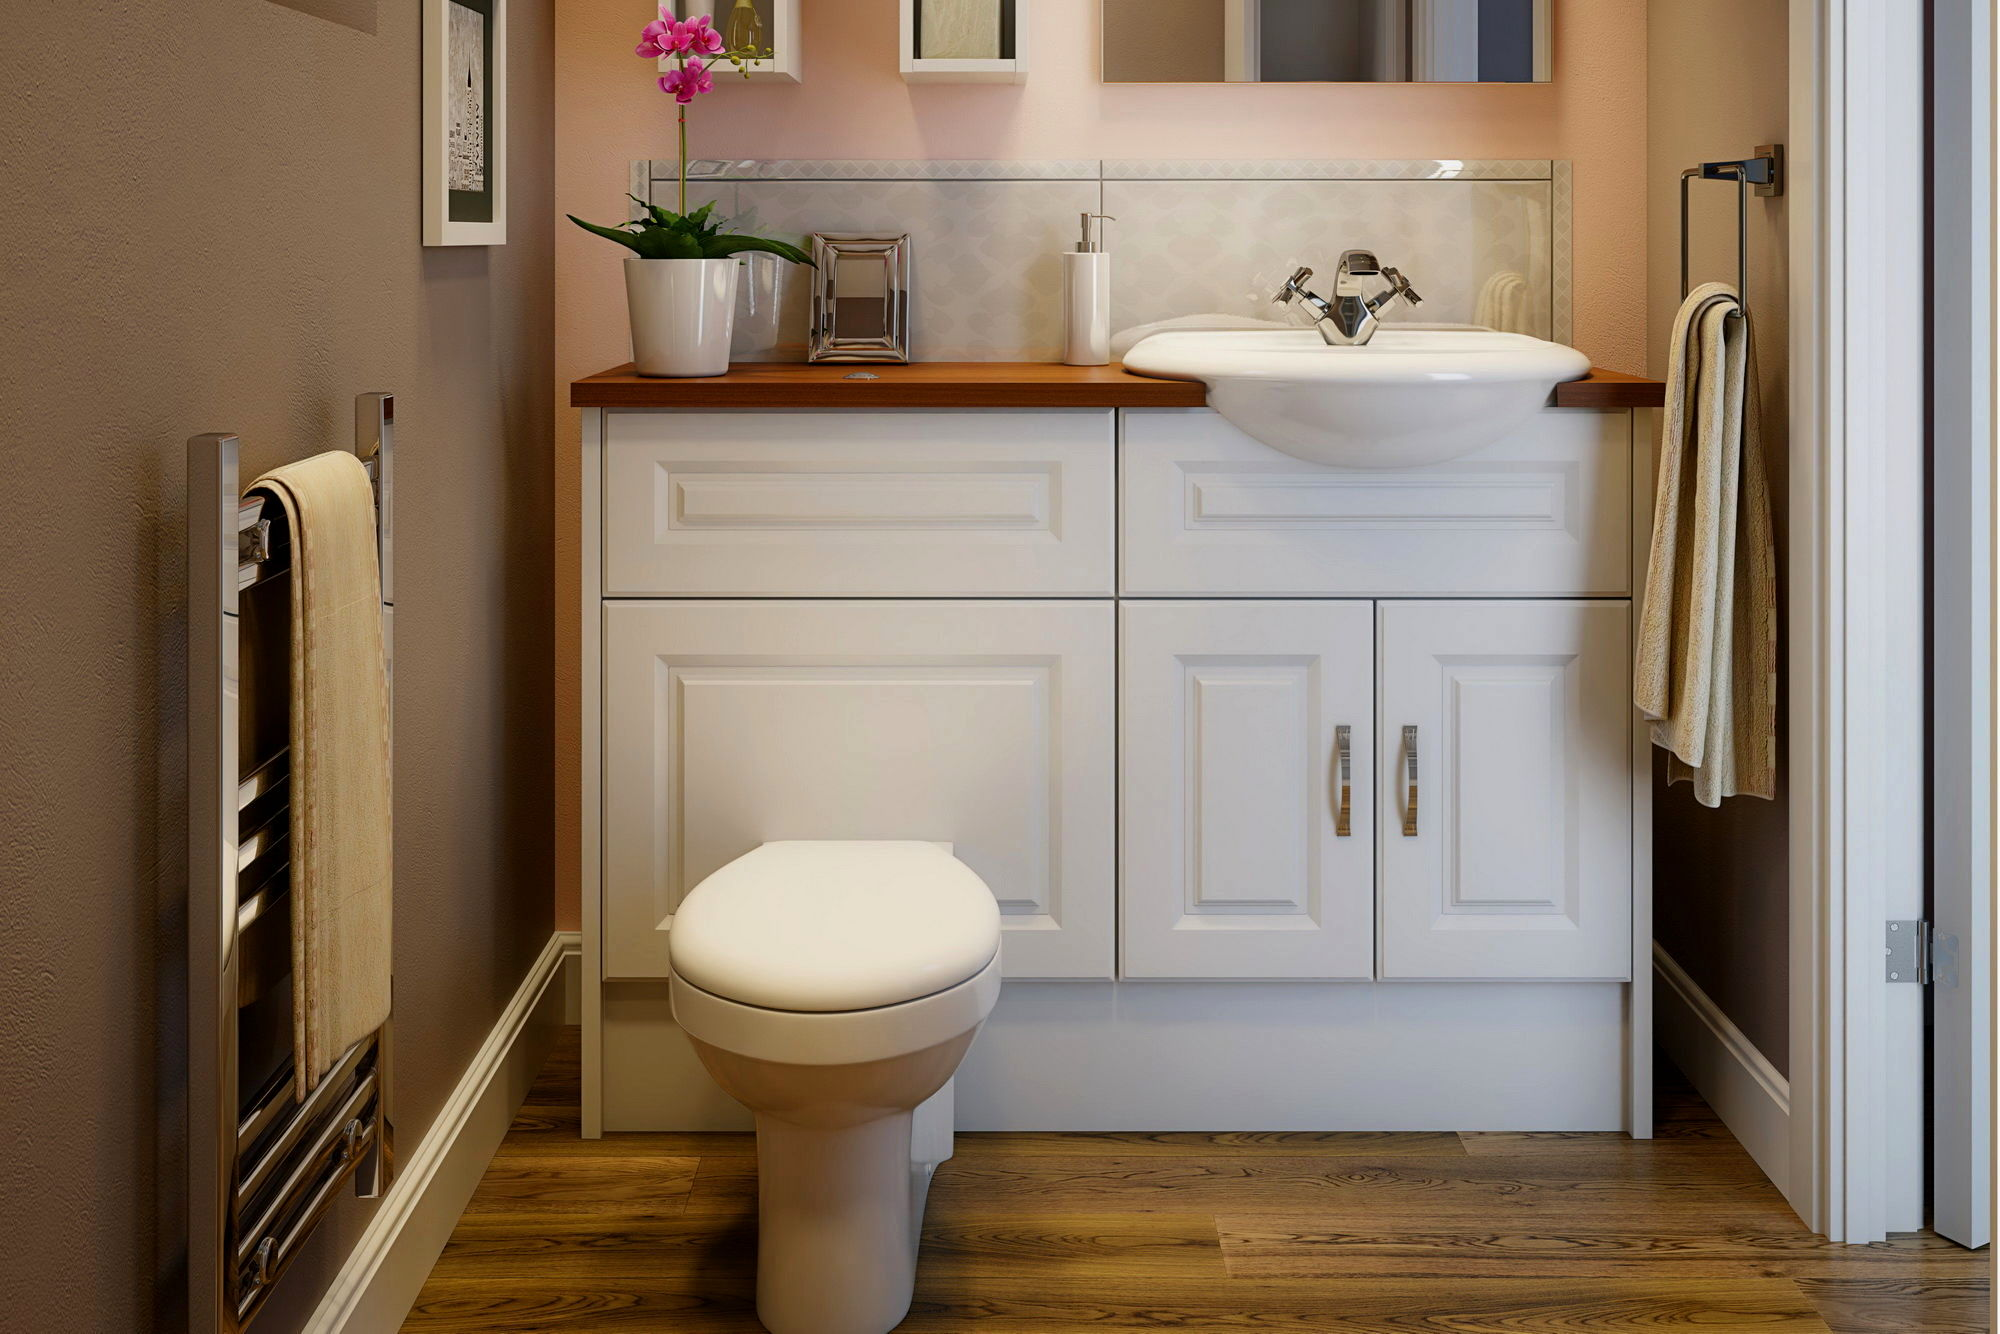 stylish bathroom vanities online plan-Elegant Bathroom Vanities Online Image